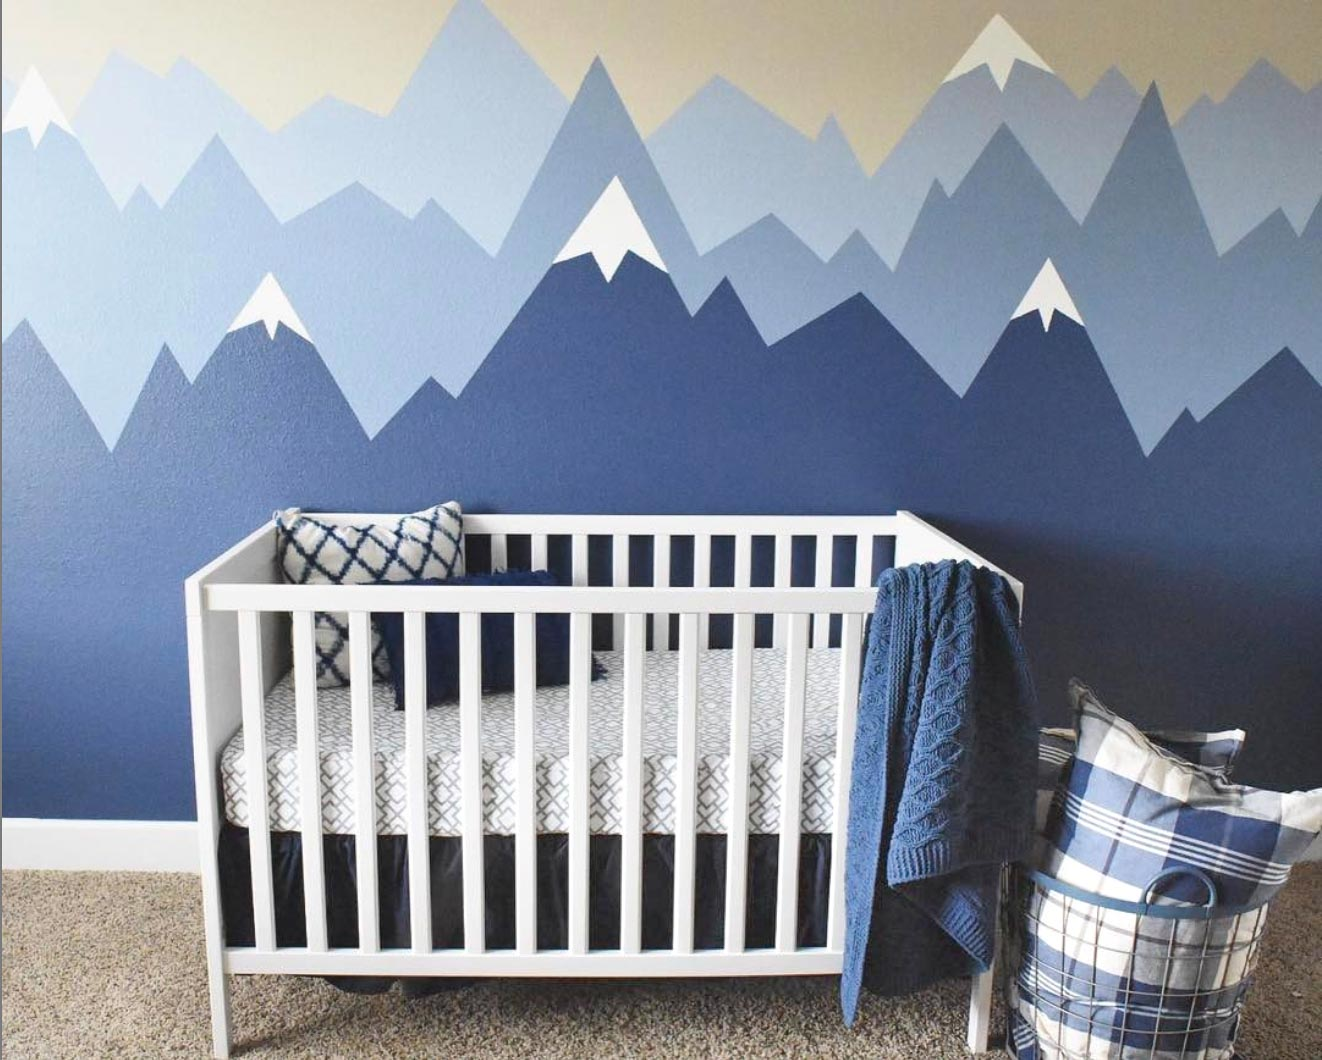 The cutest nursery with painted walls in the prettiest shades of blue!